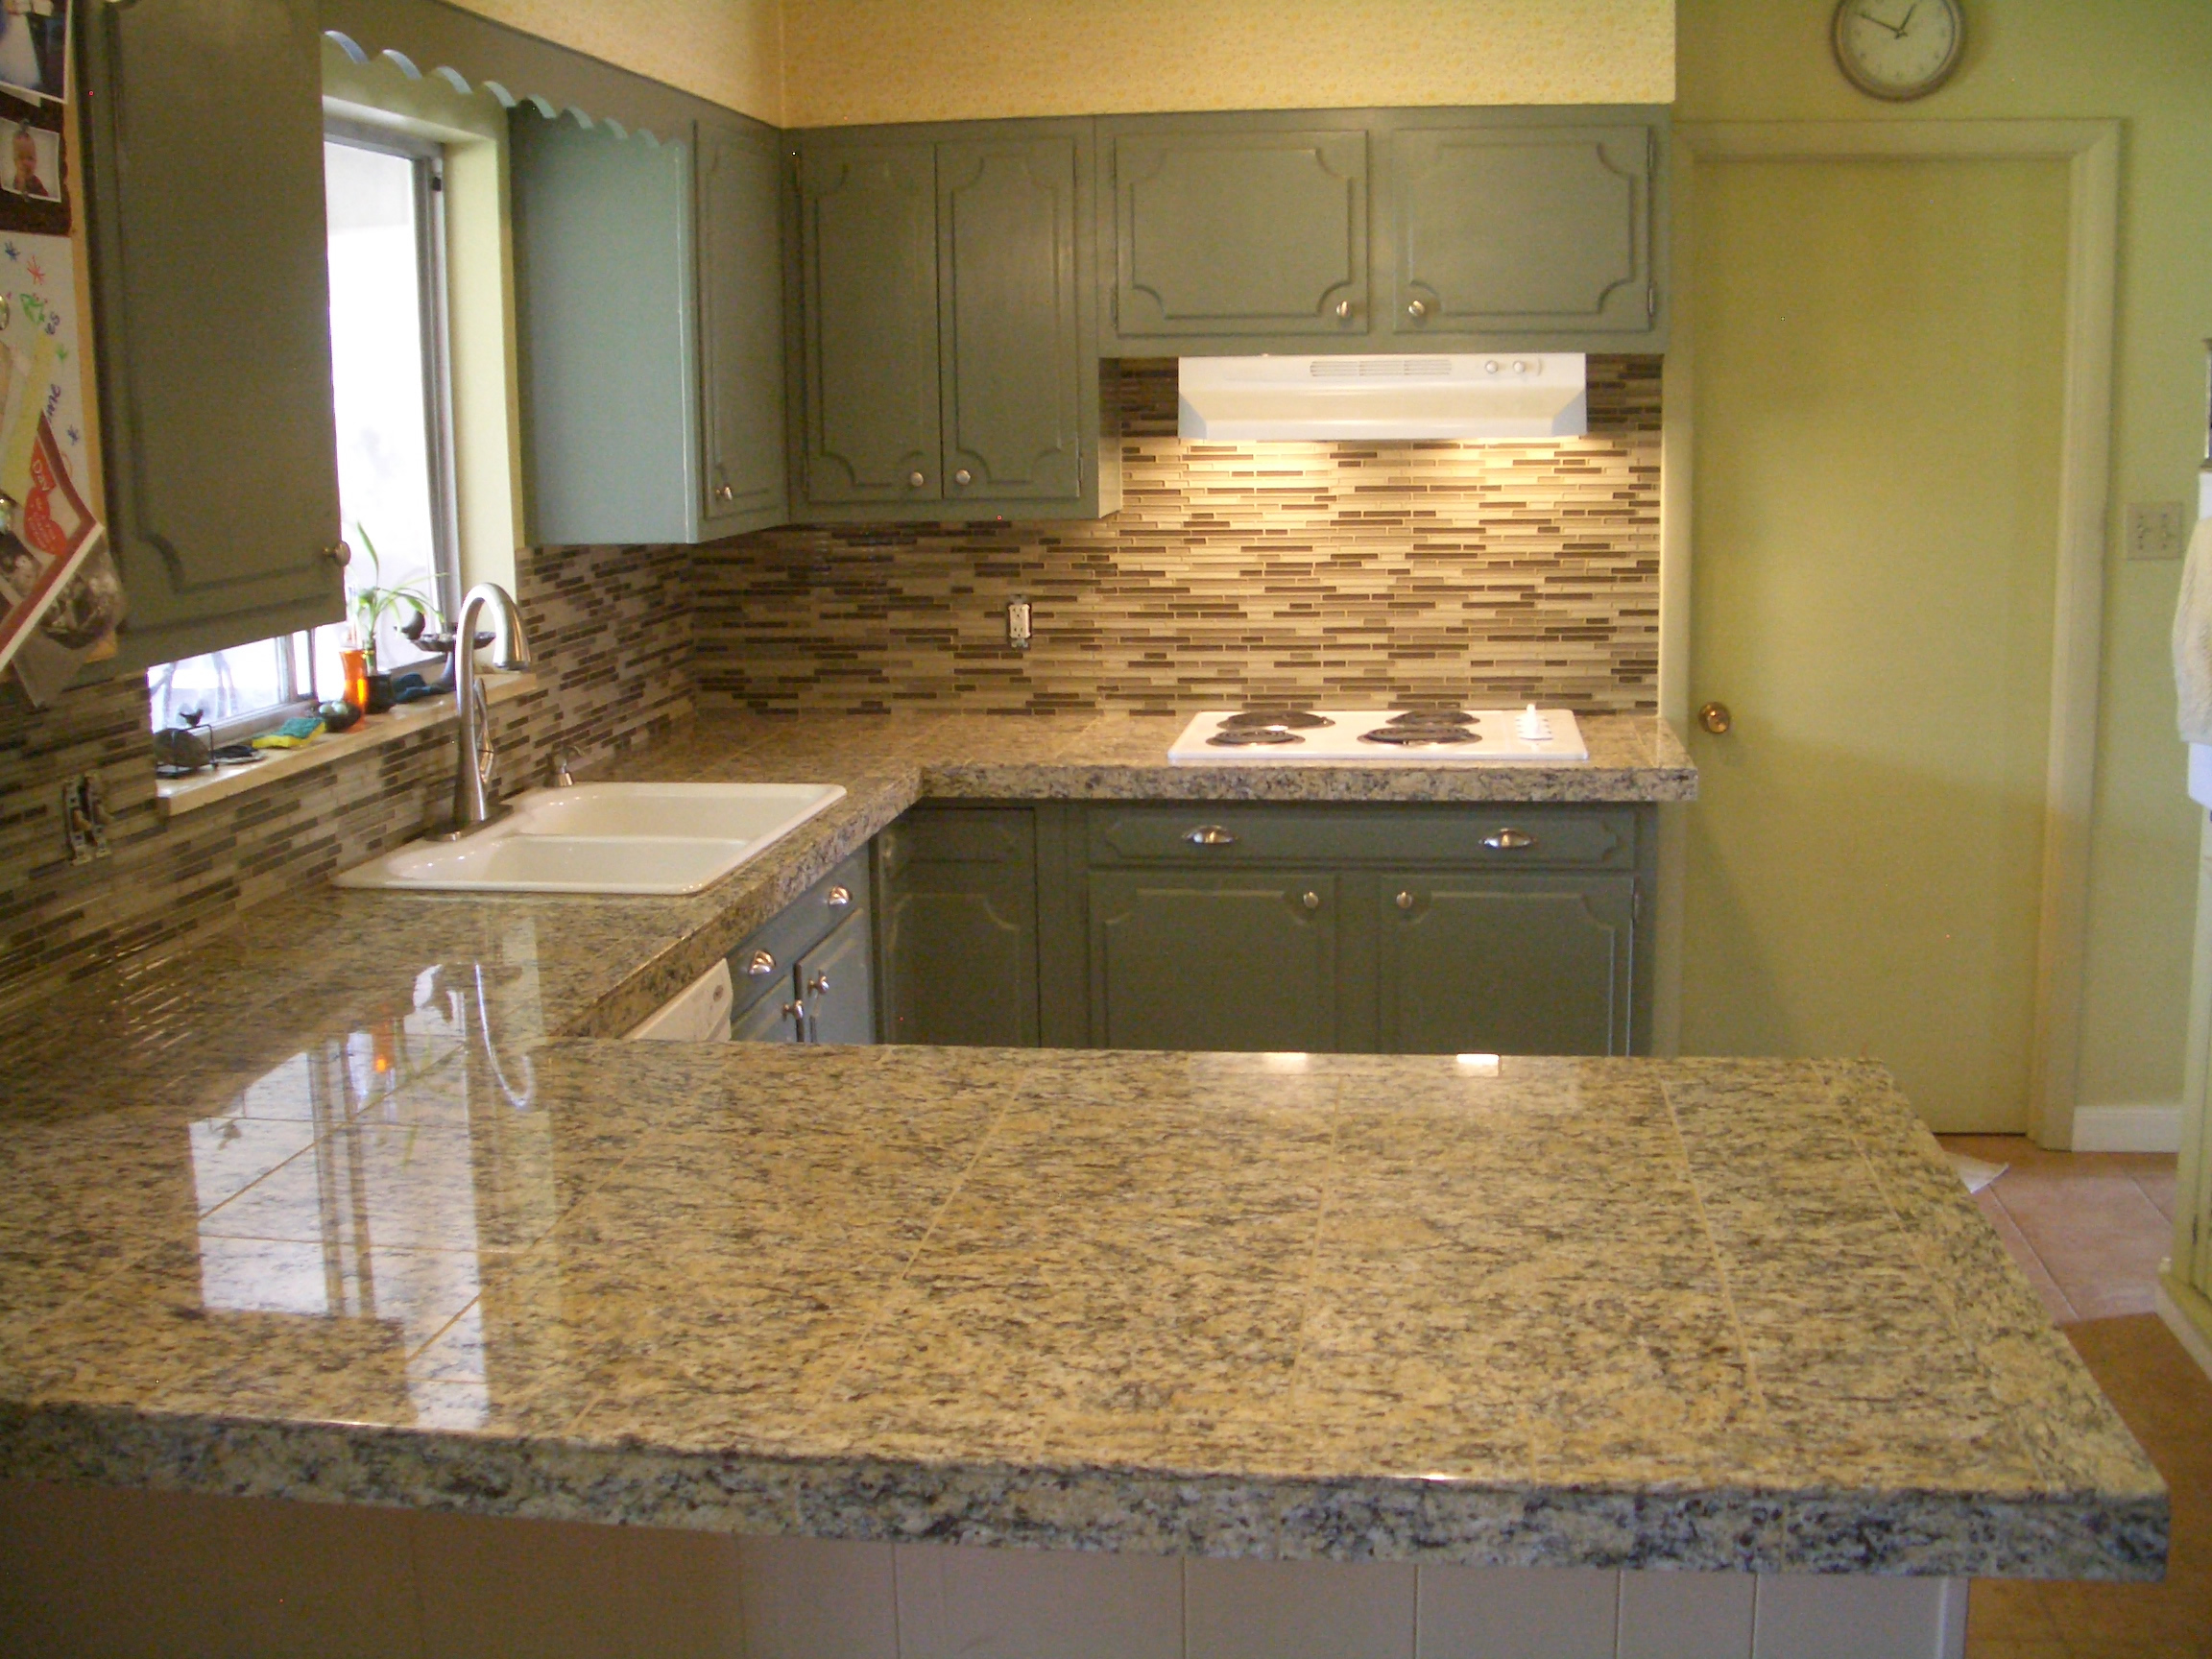 Glass tile kitchen backsplash special only 899 for Kitchens with backsplash tiles